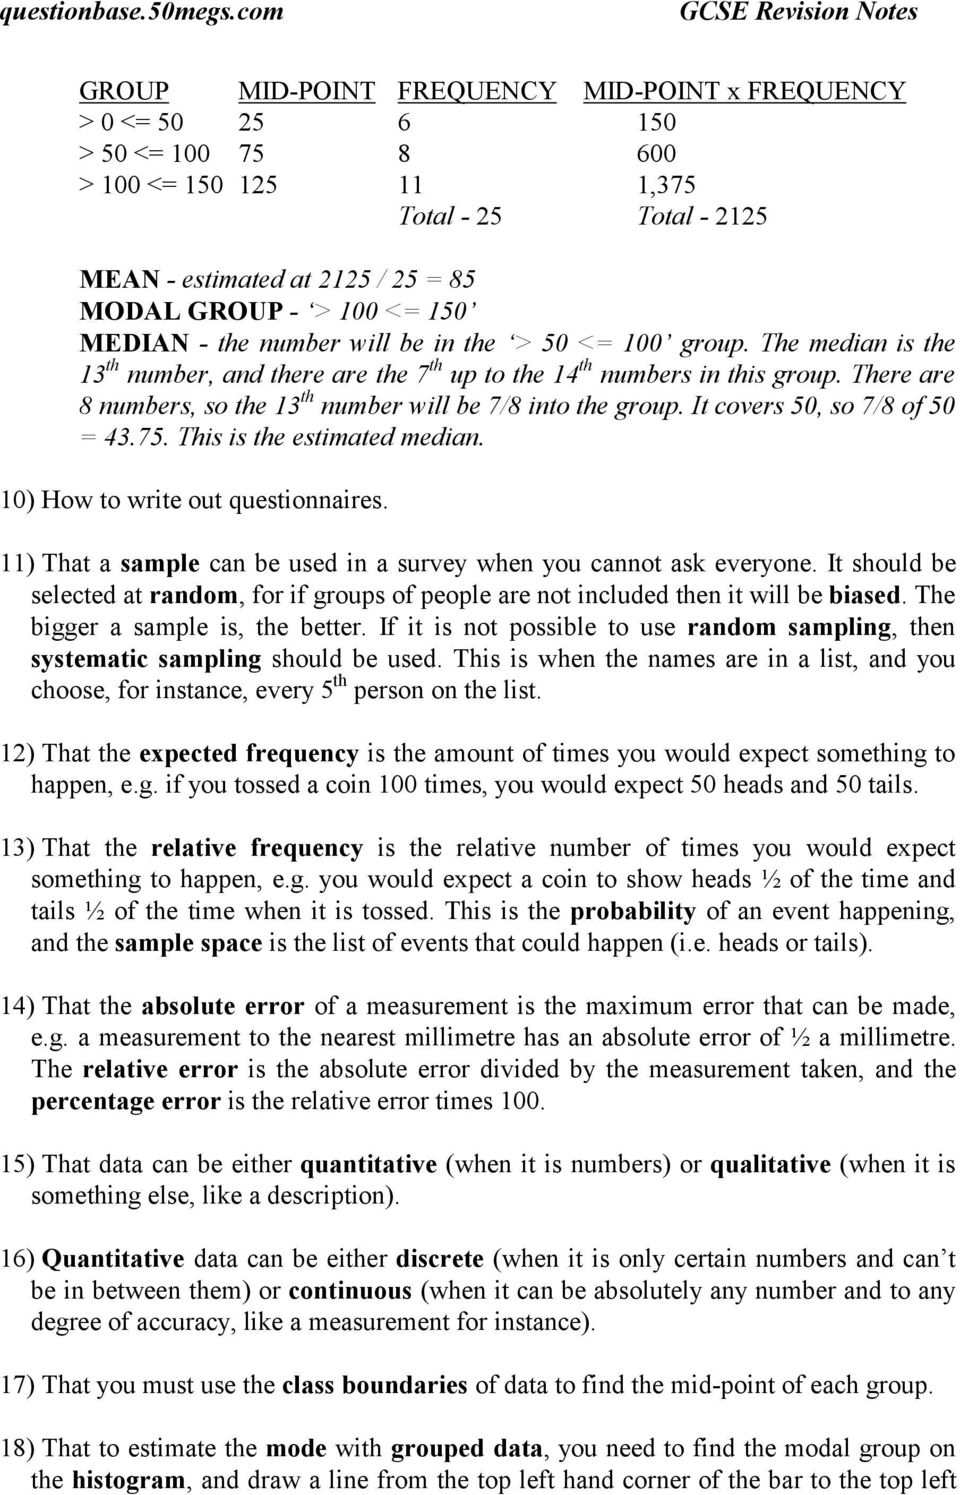 It covers 50, so 7/8 of 50 = 43.75. This is the estimated media. 10) How to write out questioaires. 11) That a sample ca be used i a survey whe you caot ask everyoe.